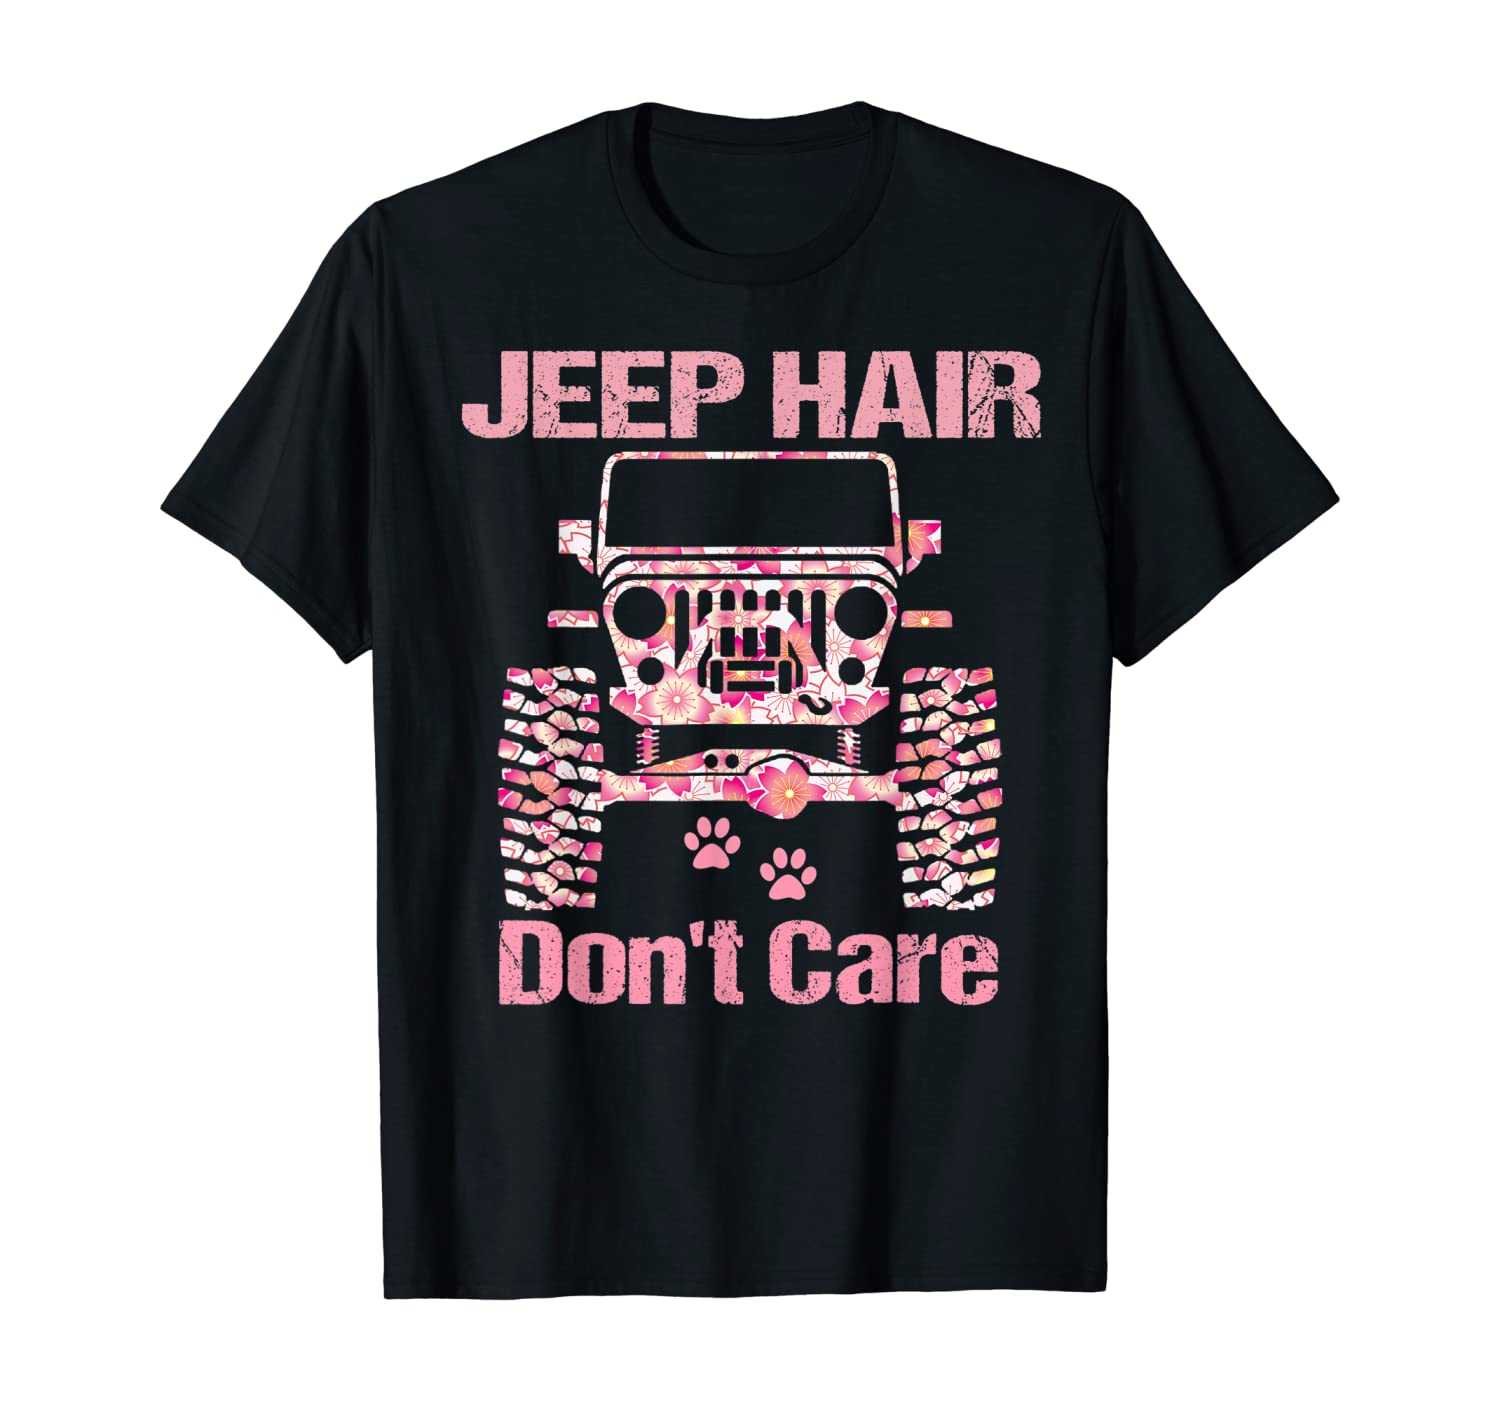 Flower Jeeps Hair Don't Care Driving Jeeps Dogs Summer Jeeps T-Shirt